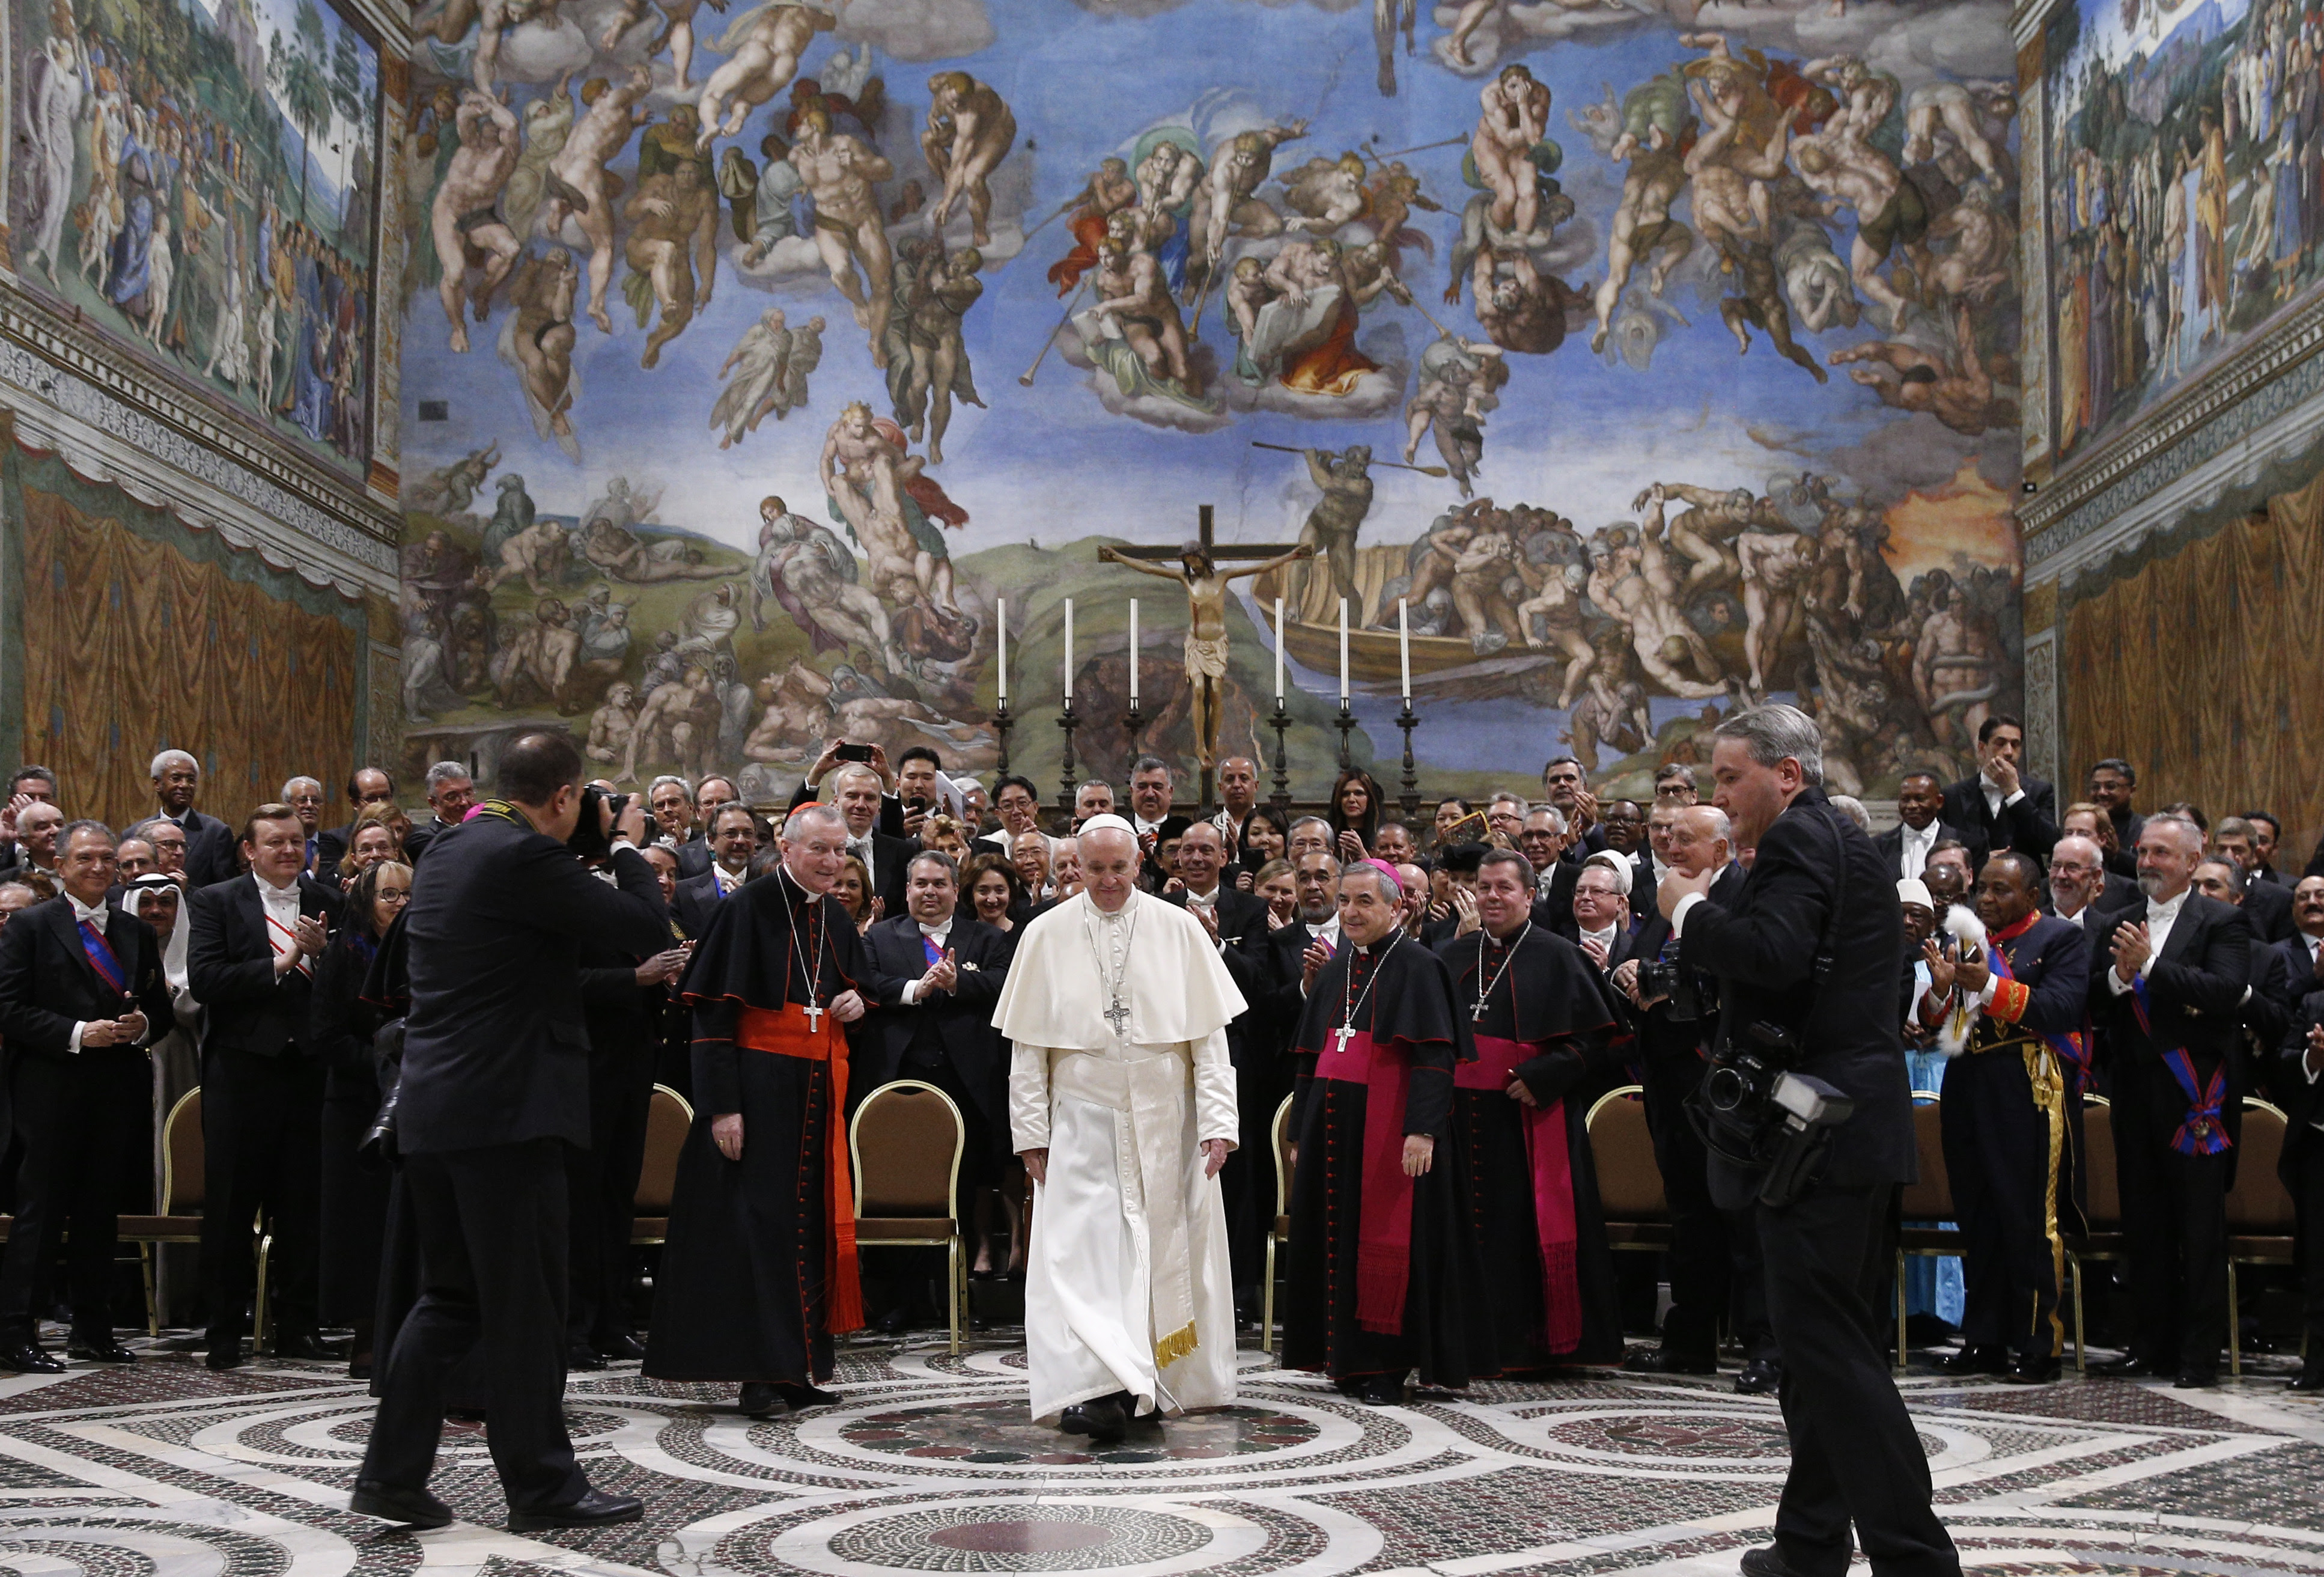 Endrtimes pope francis issues blueprint for geopolitical stability malvernweather Images